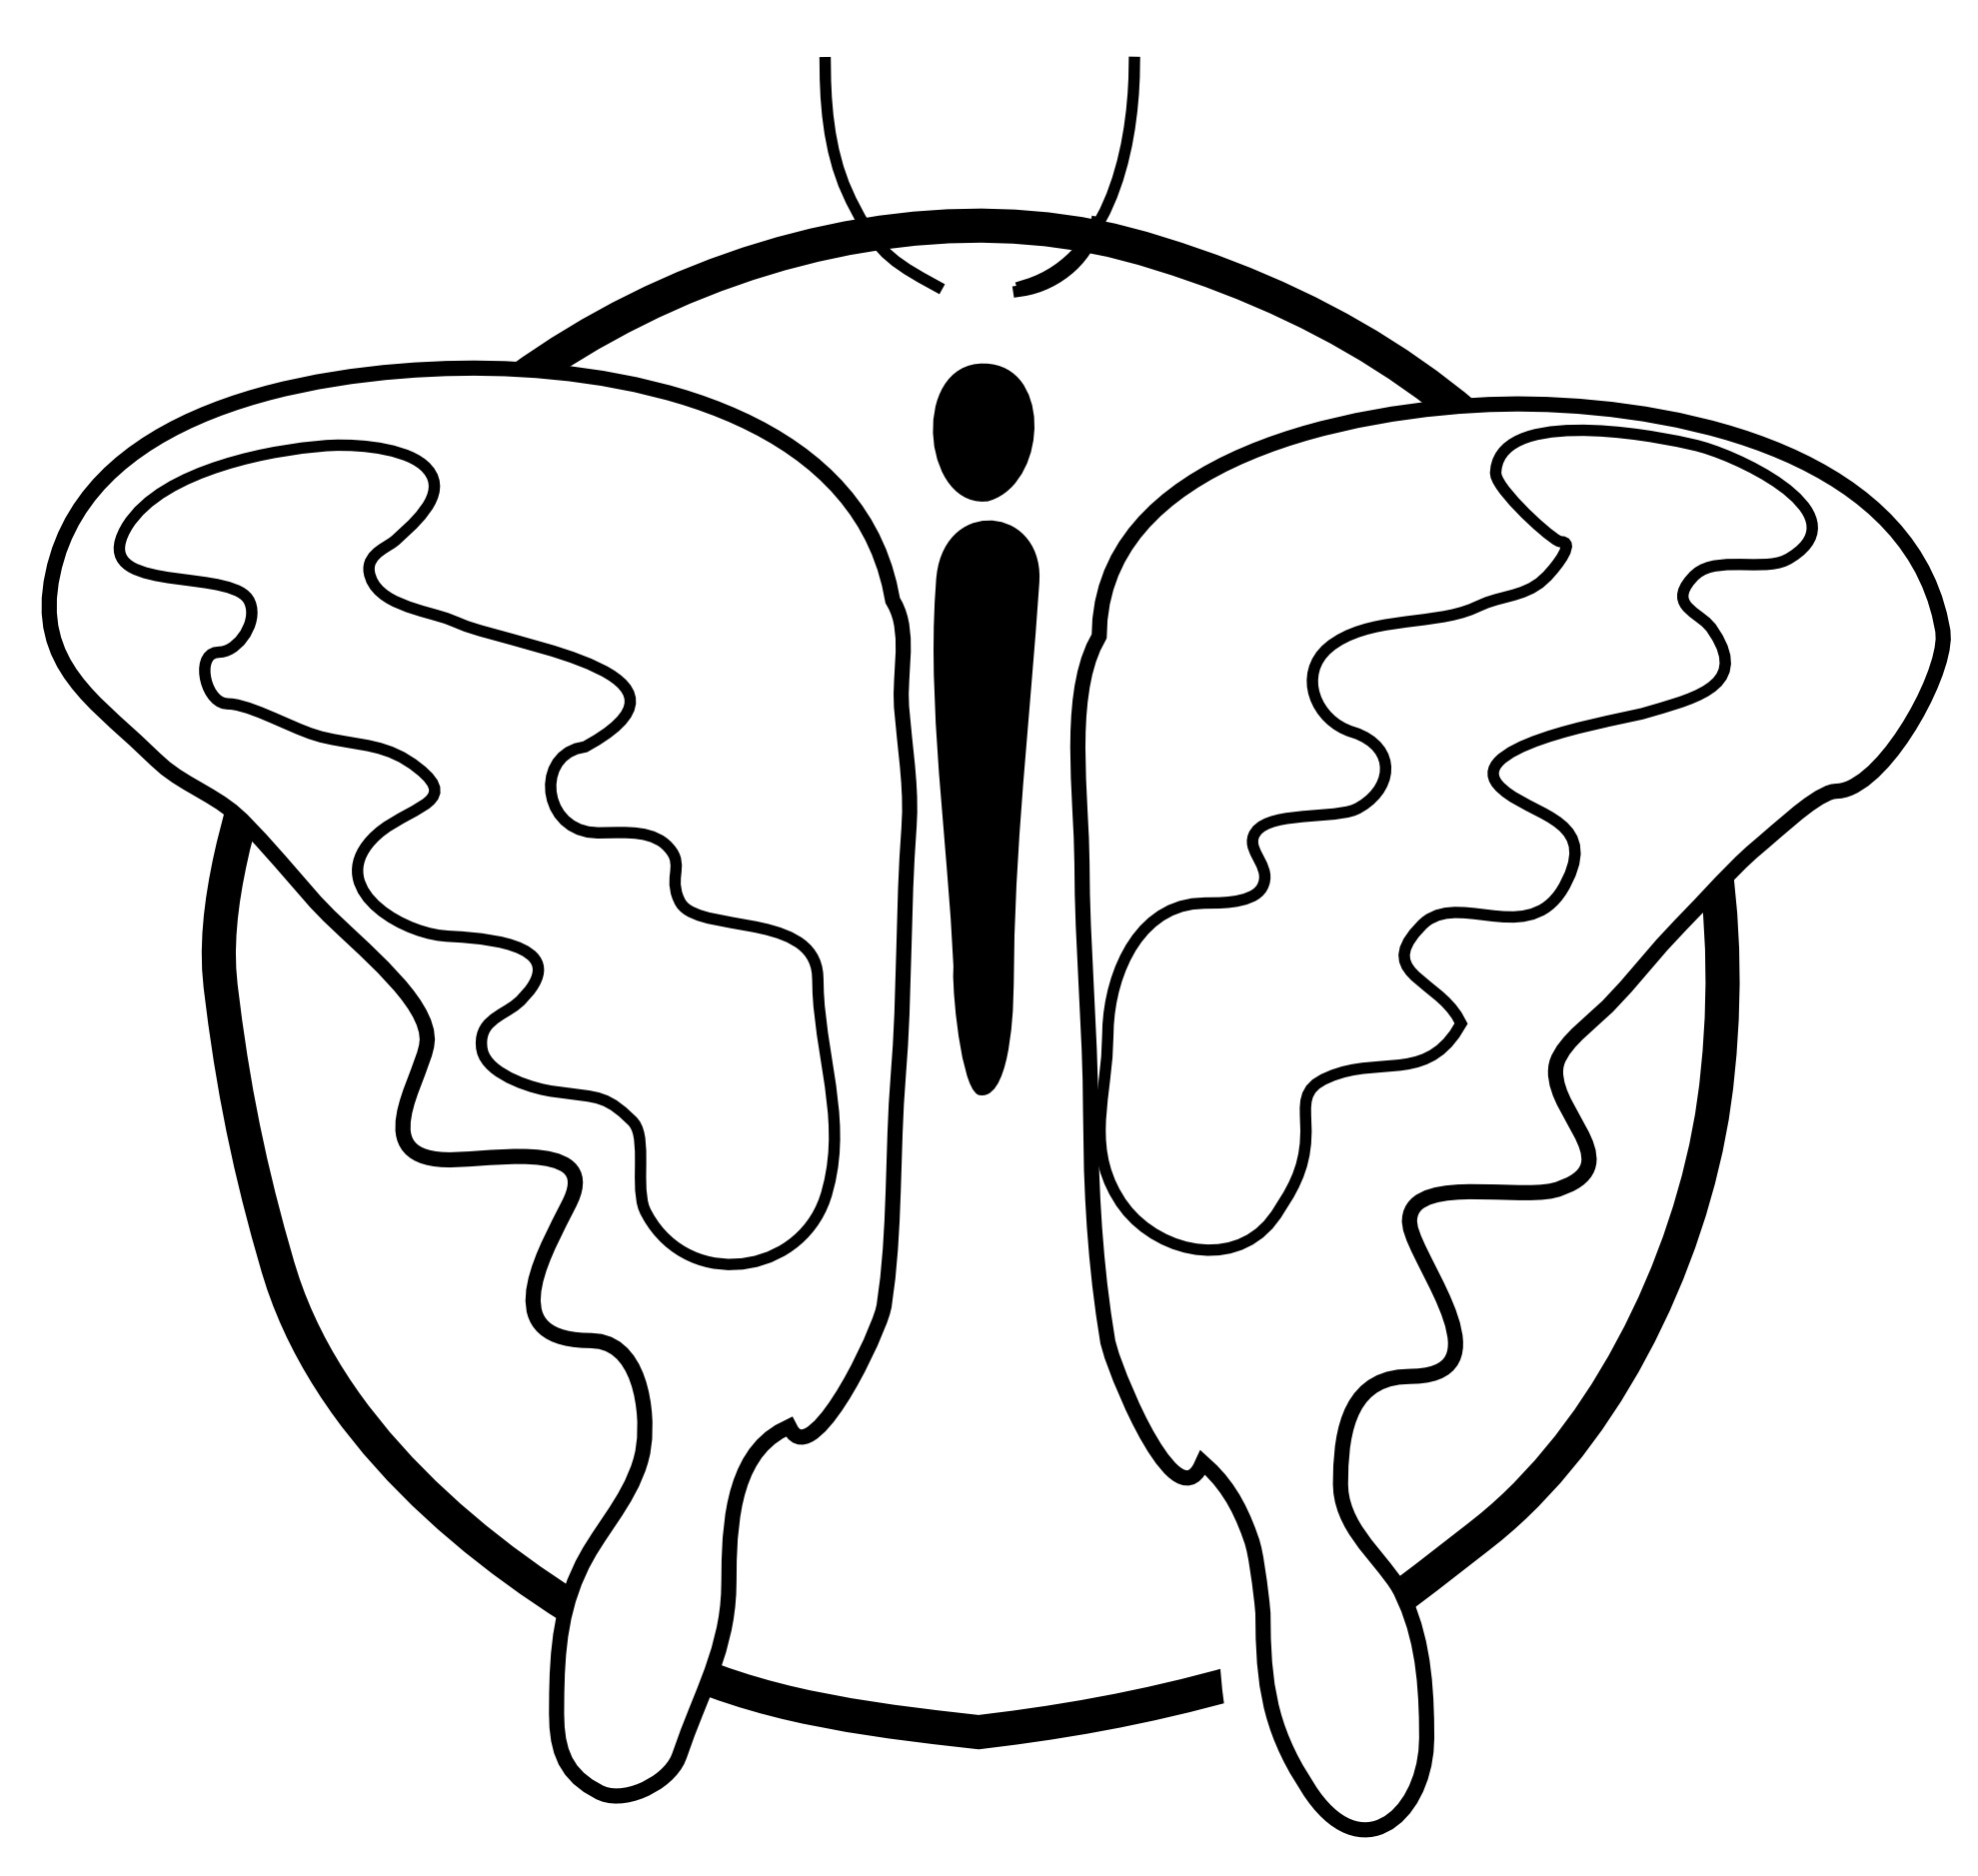 butterfly coloring pages free printable free printable butterfly coloring pages for kids pages coloring butterfly printable free